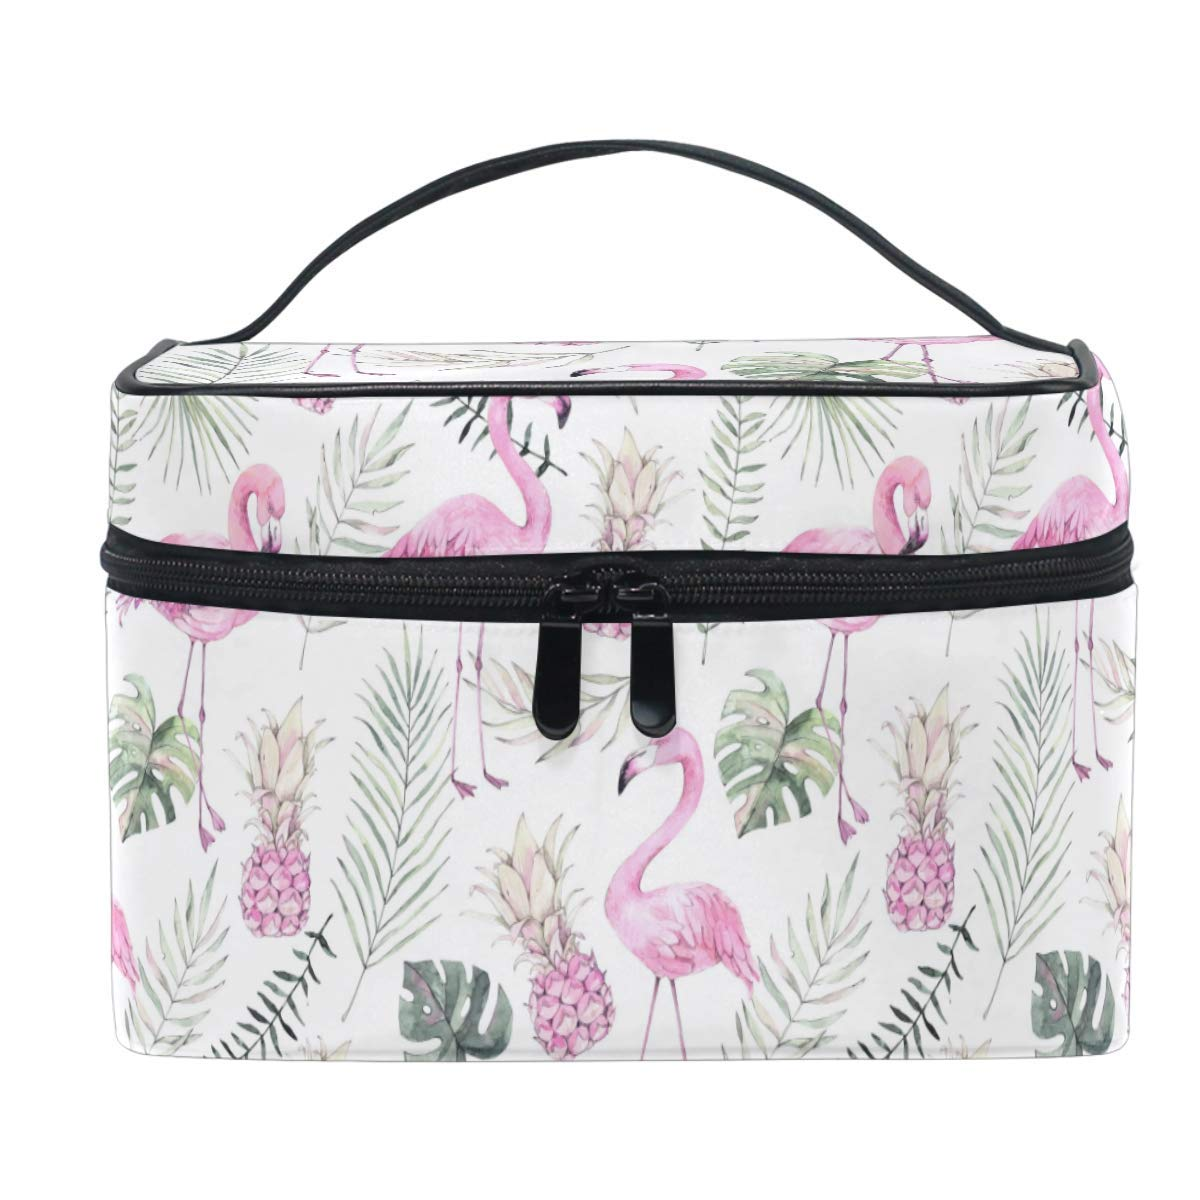 Flamingo Palm Leaves Pattern Luggage Bag Capacity Portable Large Travel Duffel Bag Makeup Storage